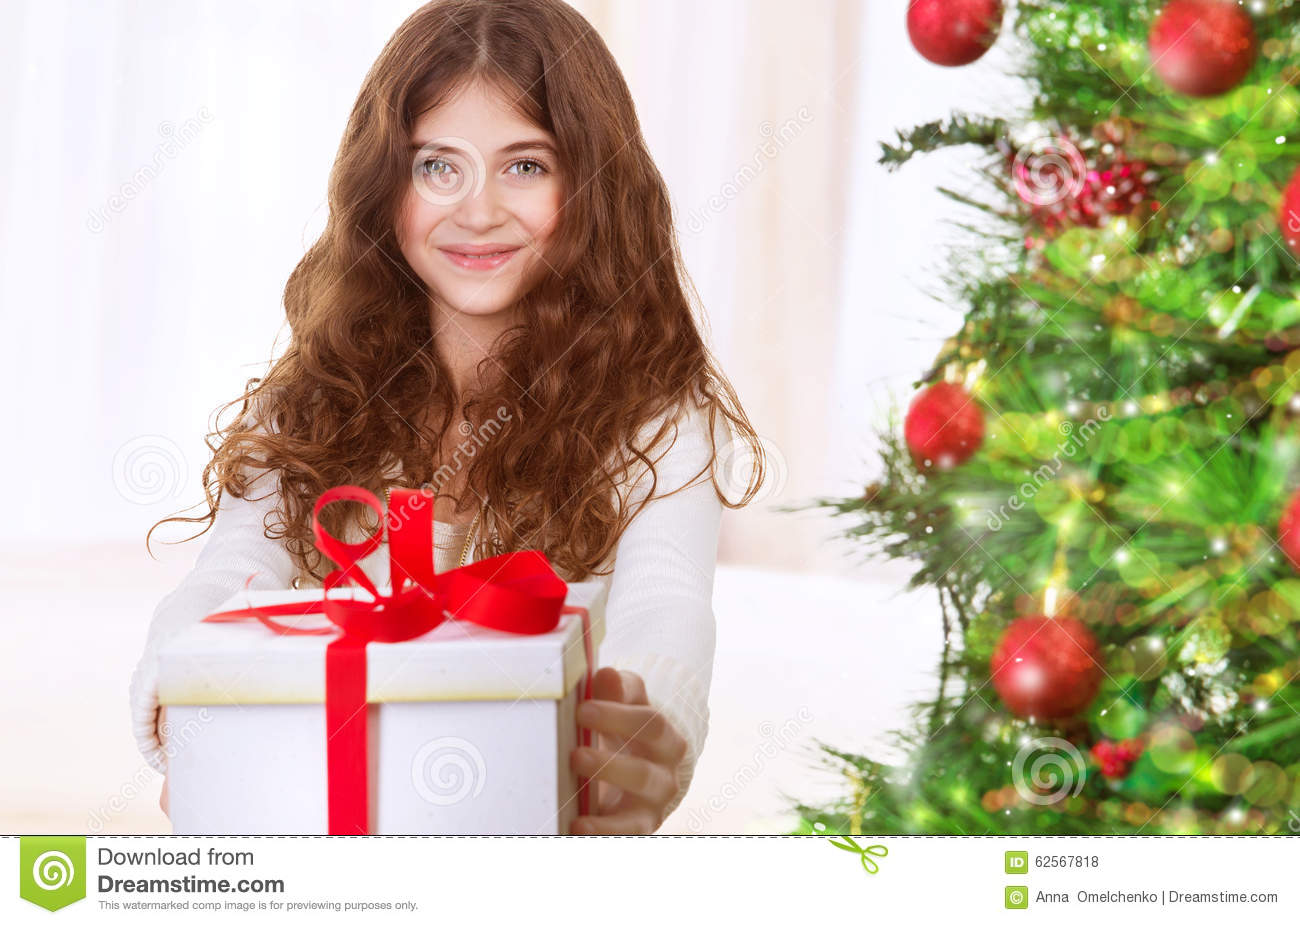 Cute Christmas Gifts For Teenage Girls.Happy Girl With Christmas Gift Stock Photo Image Of Cute